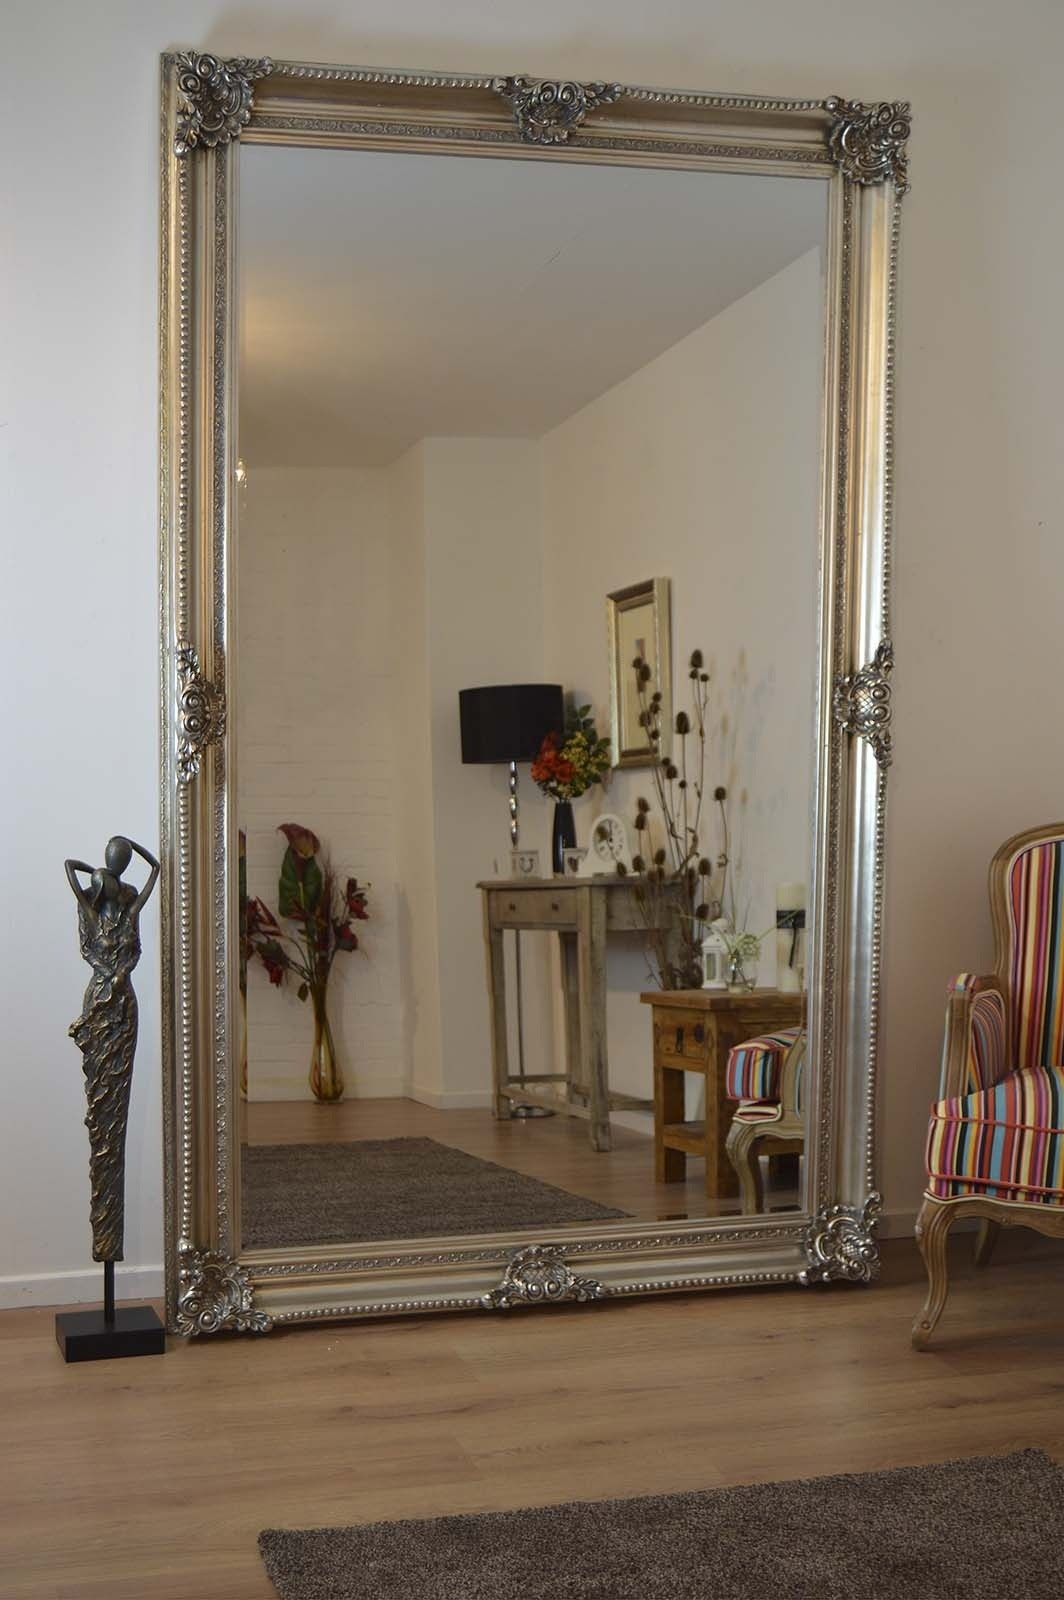 Classic Impression On Antique Wall Mirrors Vwho Inside Antique Style Mirrors Wall (Image 2 of 15)